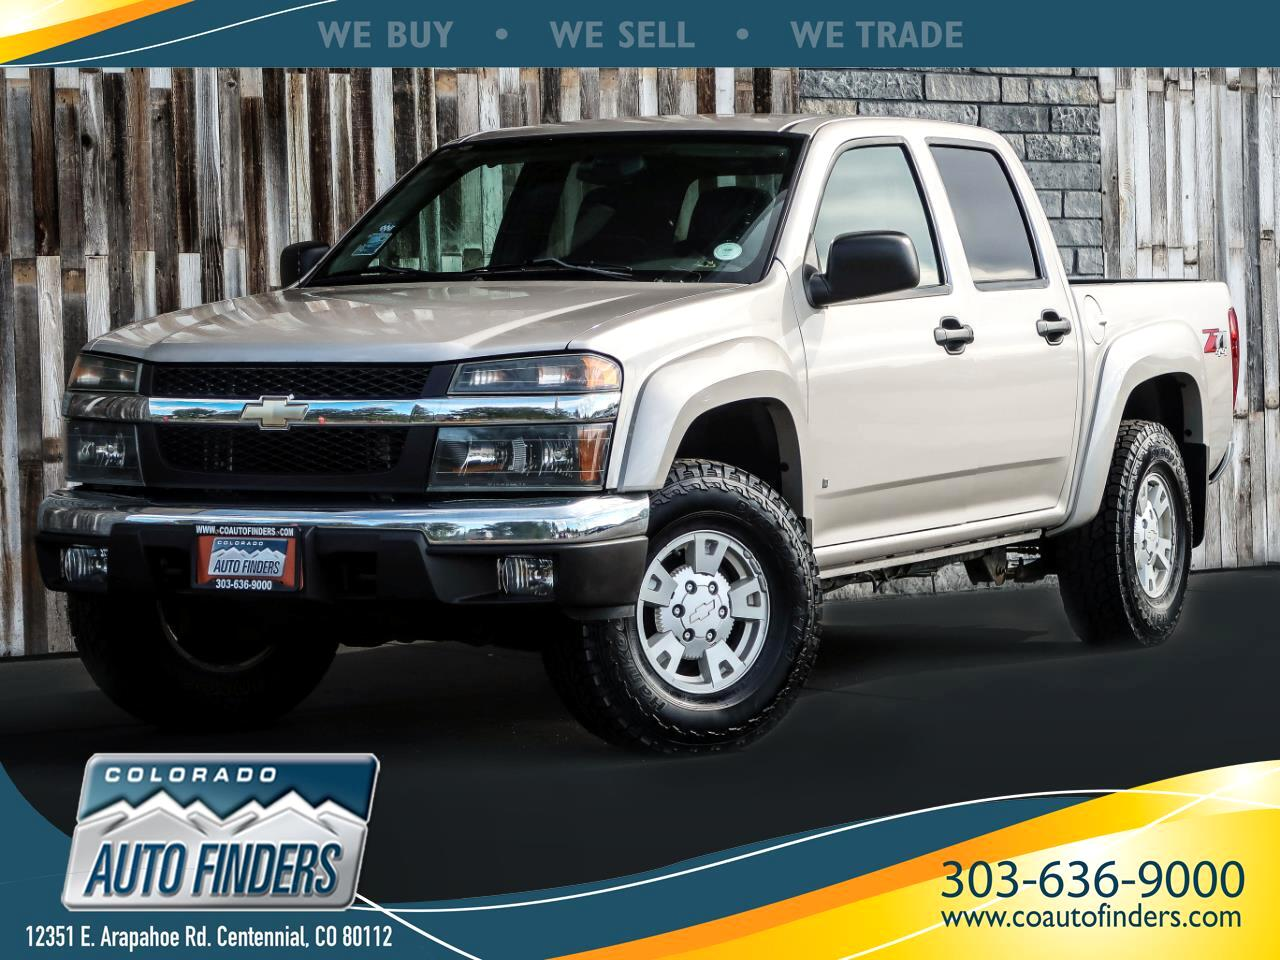 2006 Chevrolet Colorado Crew Cab 126.0